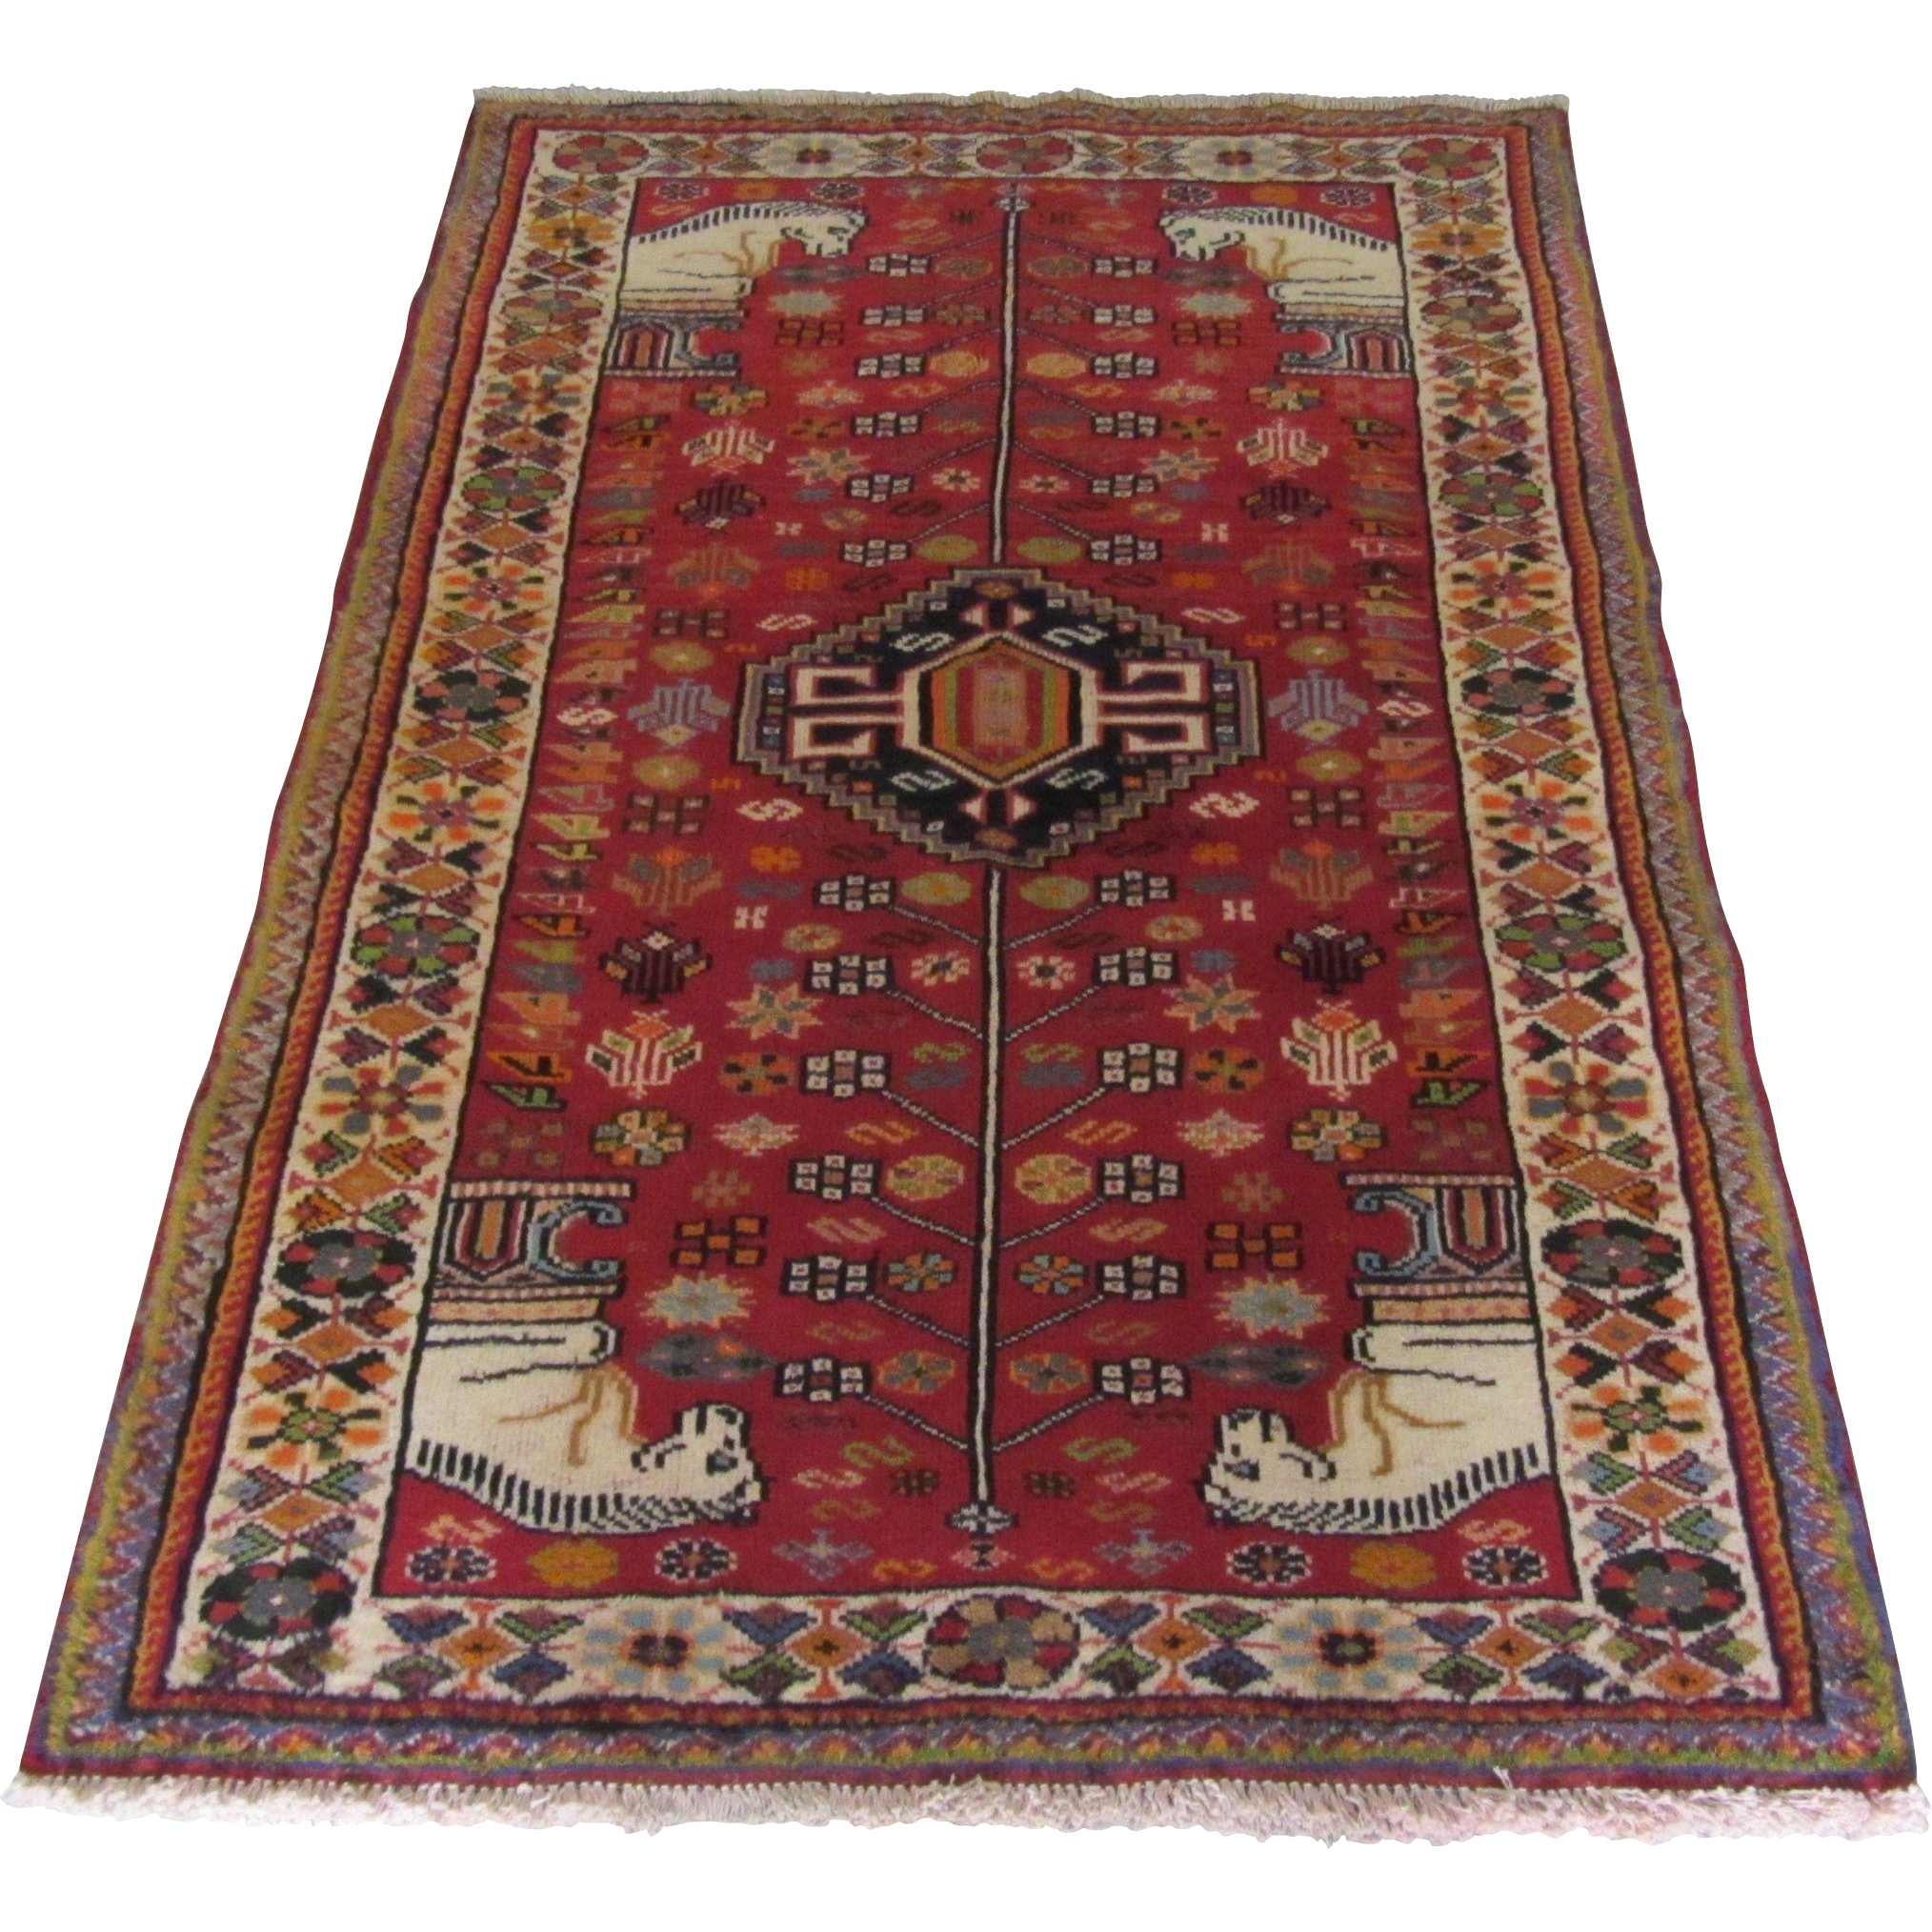 carpet rug png image collection download #27276